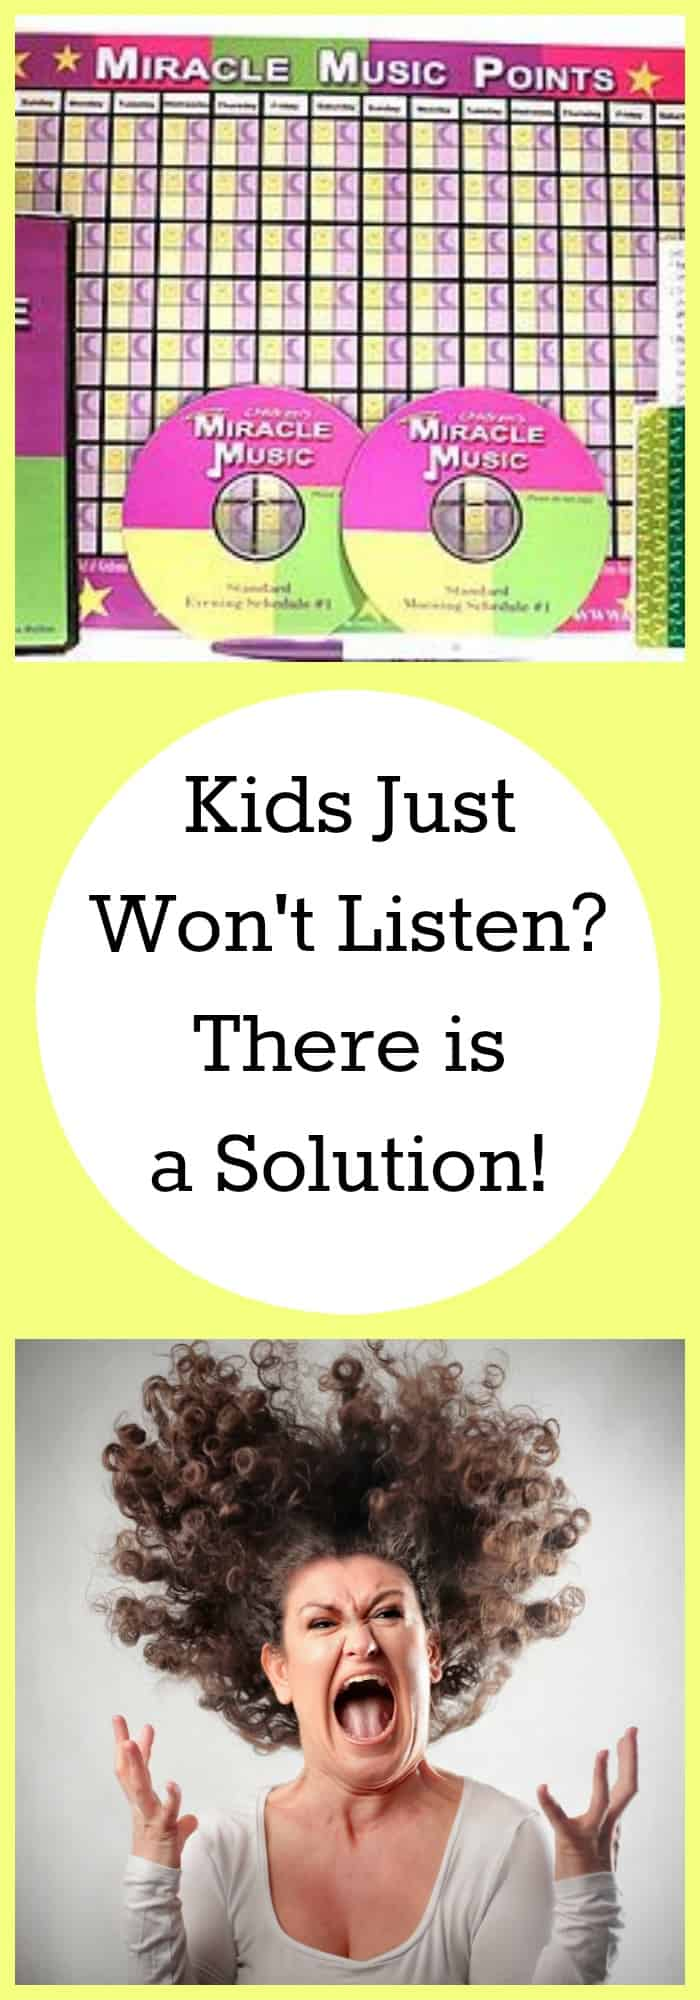 Parenting-Kids Just Won't Listen?-The Organized Mom